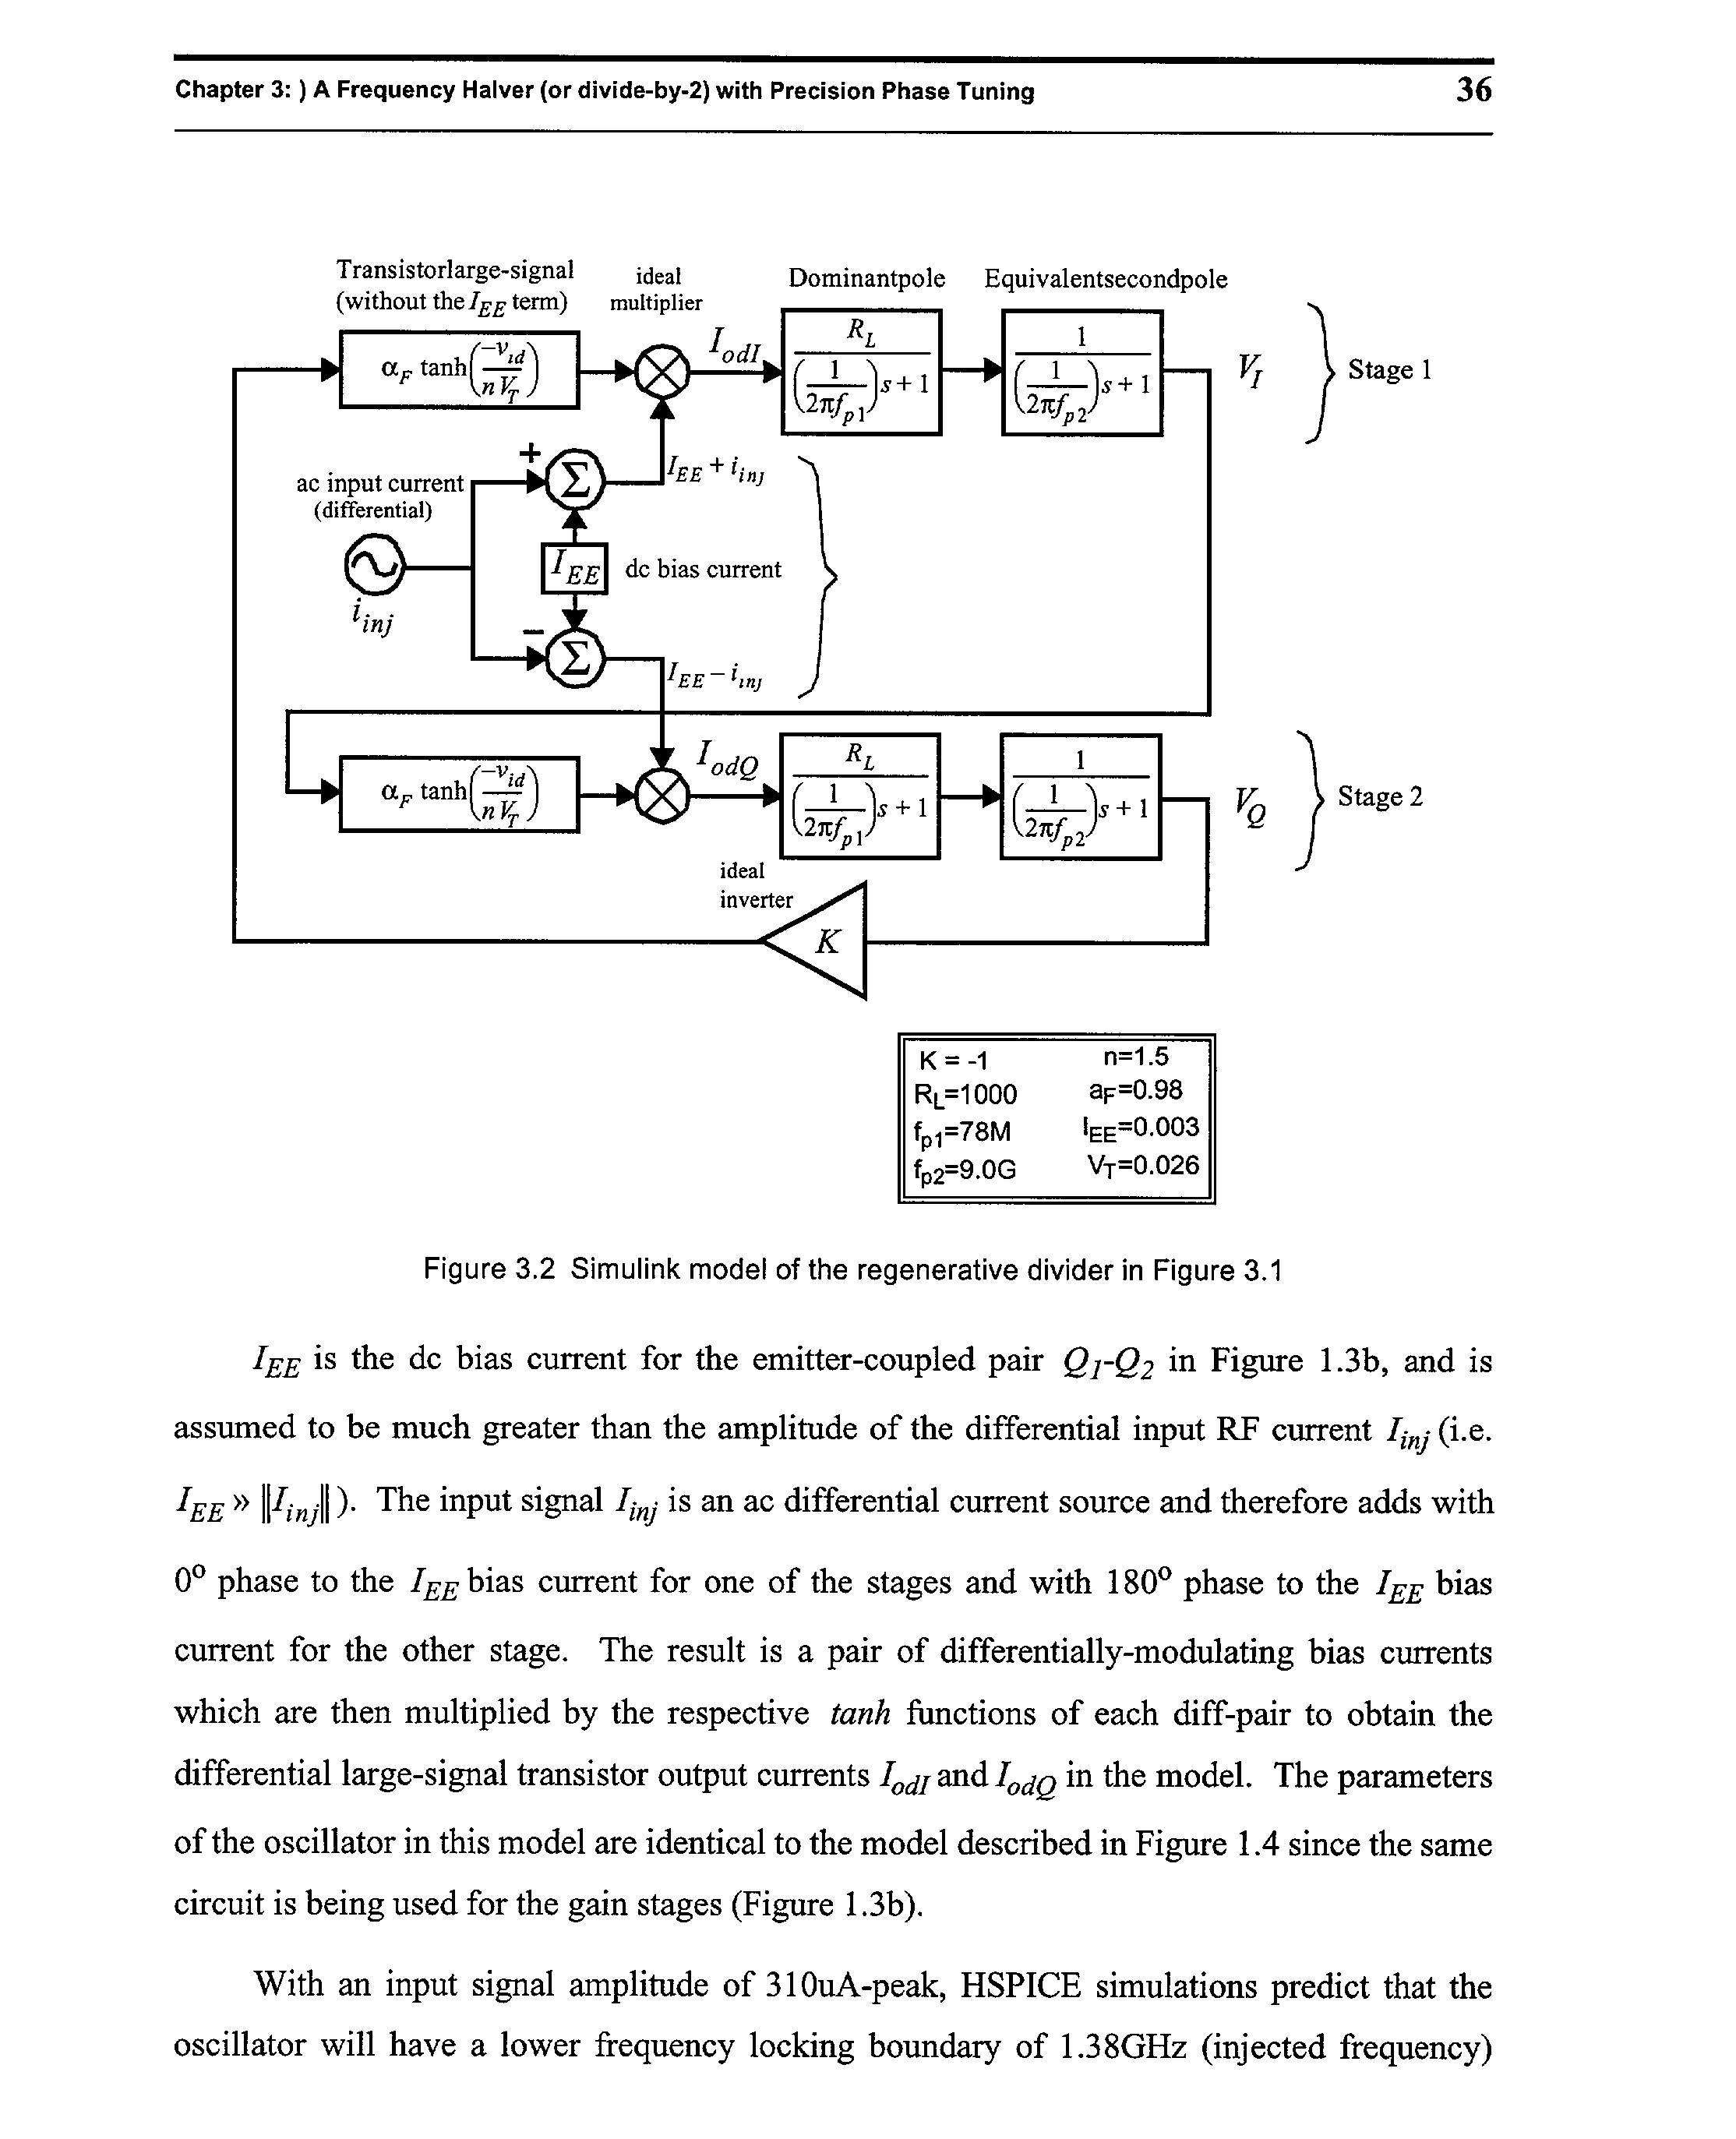 Us20030119456a1 Voltage Controlled Quadrature Oscillator With Transistor Phase Shift Electronic Circuits And Diagram Figure 20030626 P00048